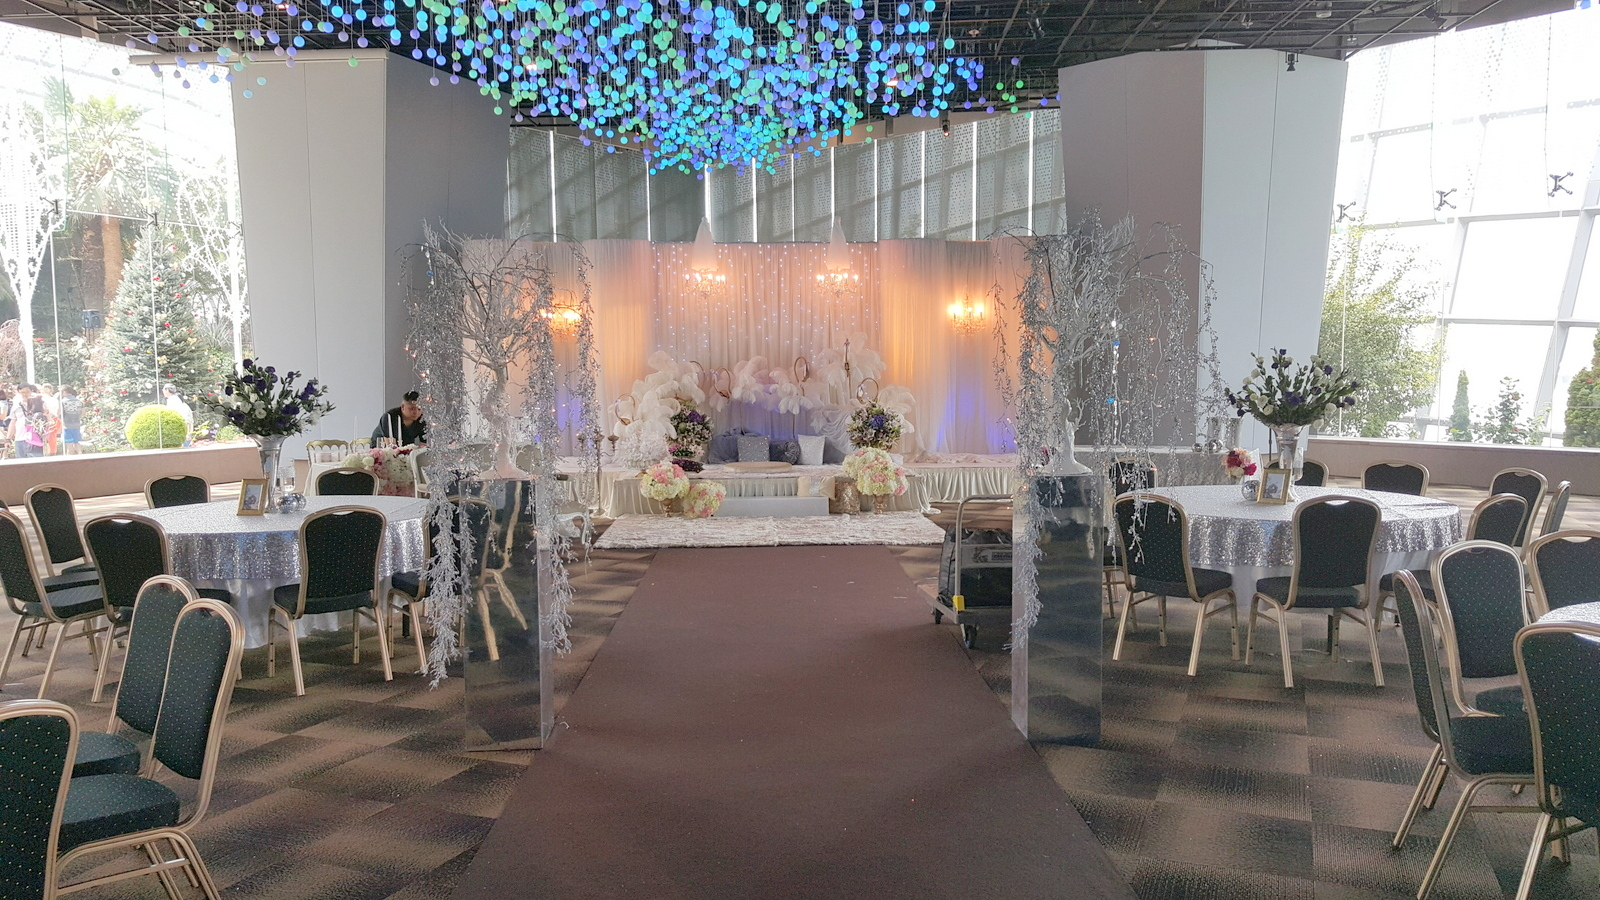 wedding venue at flower field hall by gardens by the bay bridestorycom - Garden By The Bay Flower Field Hall